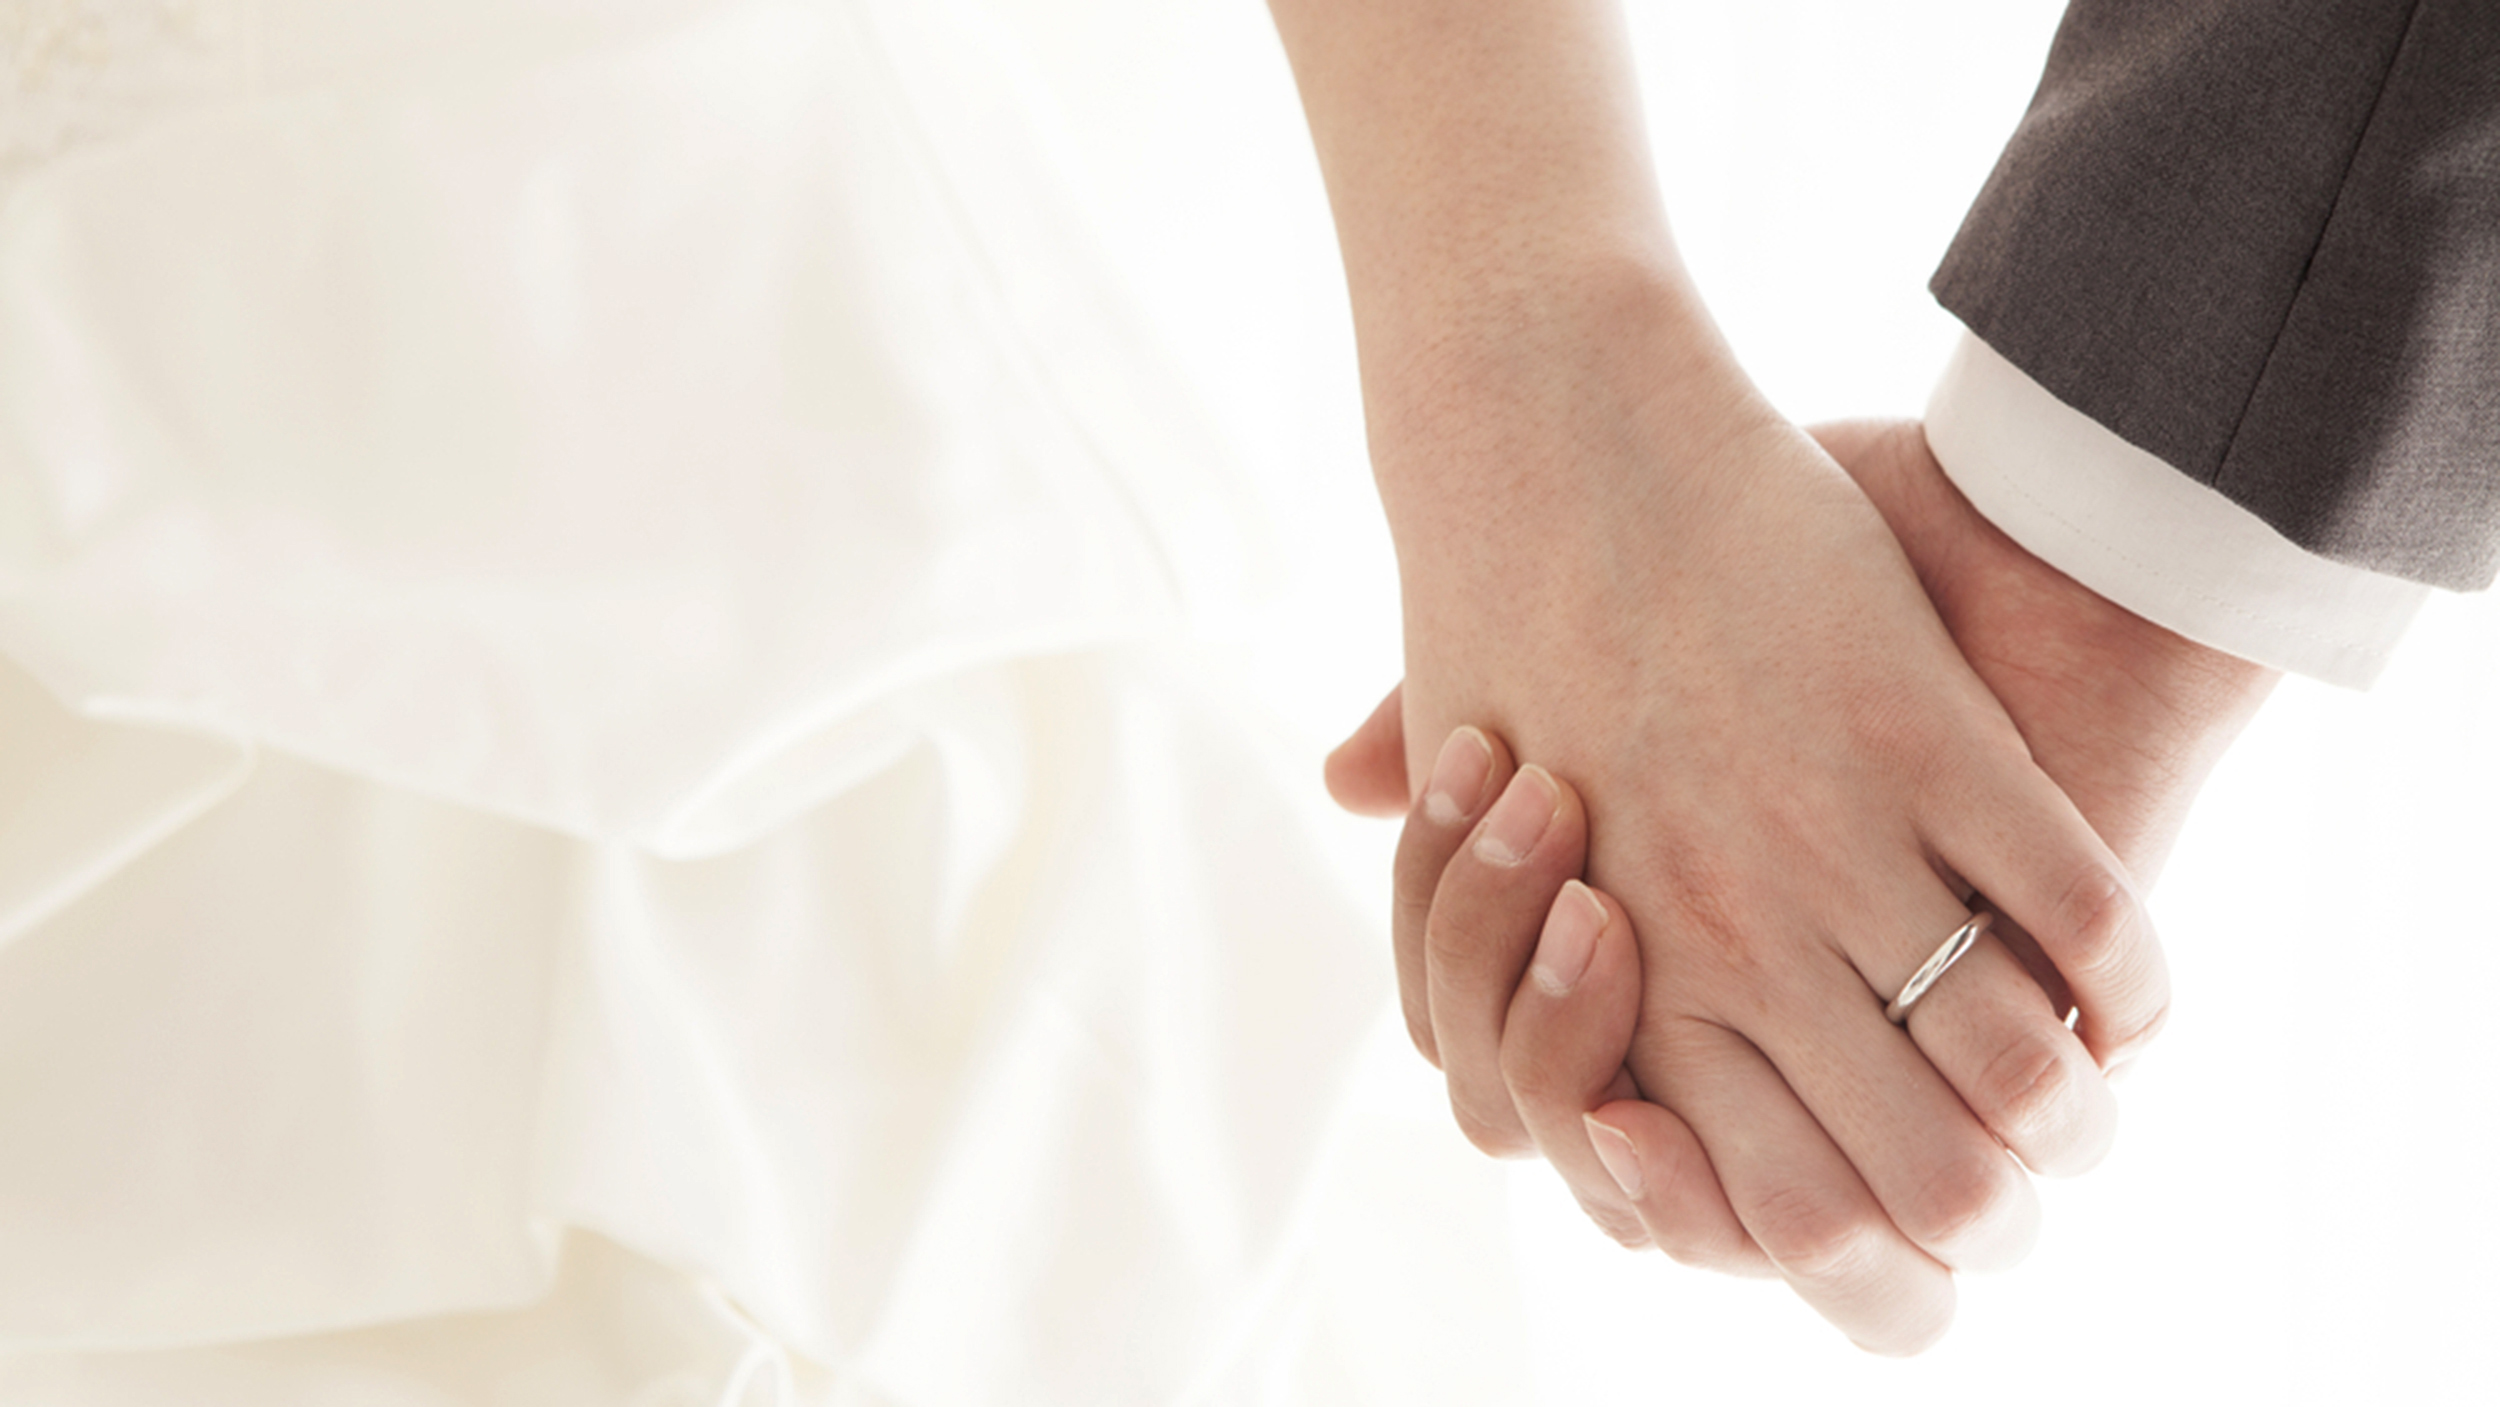 11 THINGS YOU MUST NOT DO IF YOU ARE LOOKING FOR A GOOD WIFE